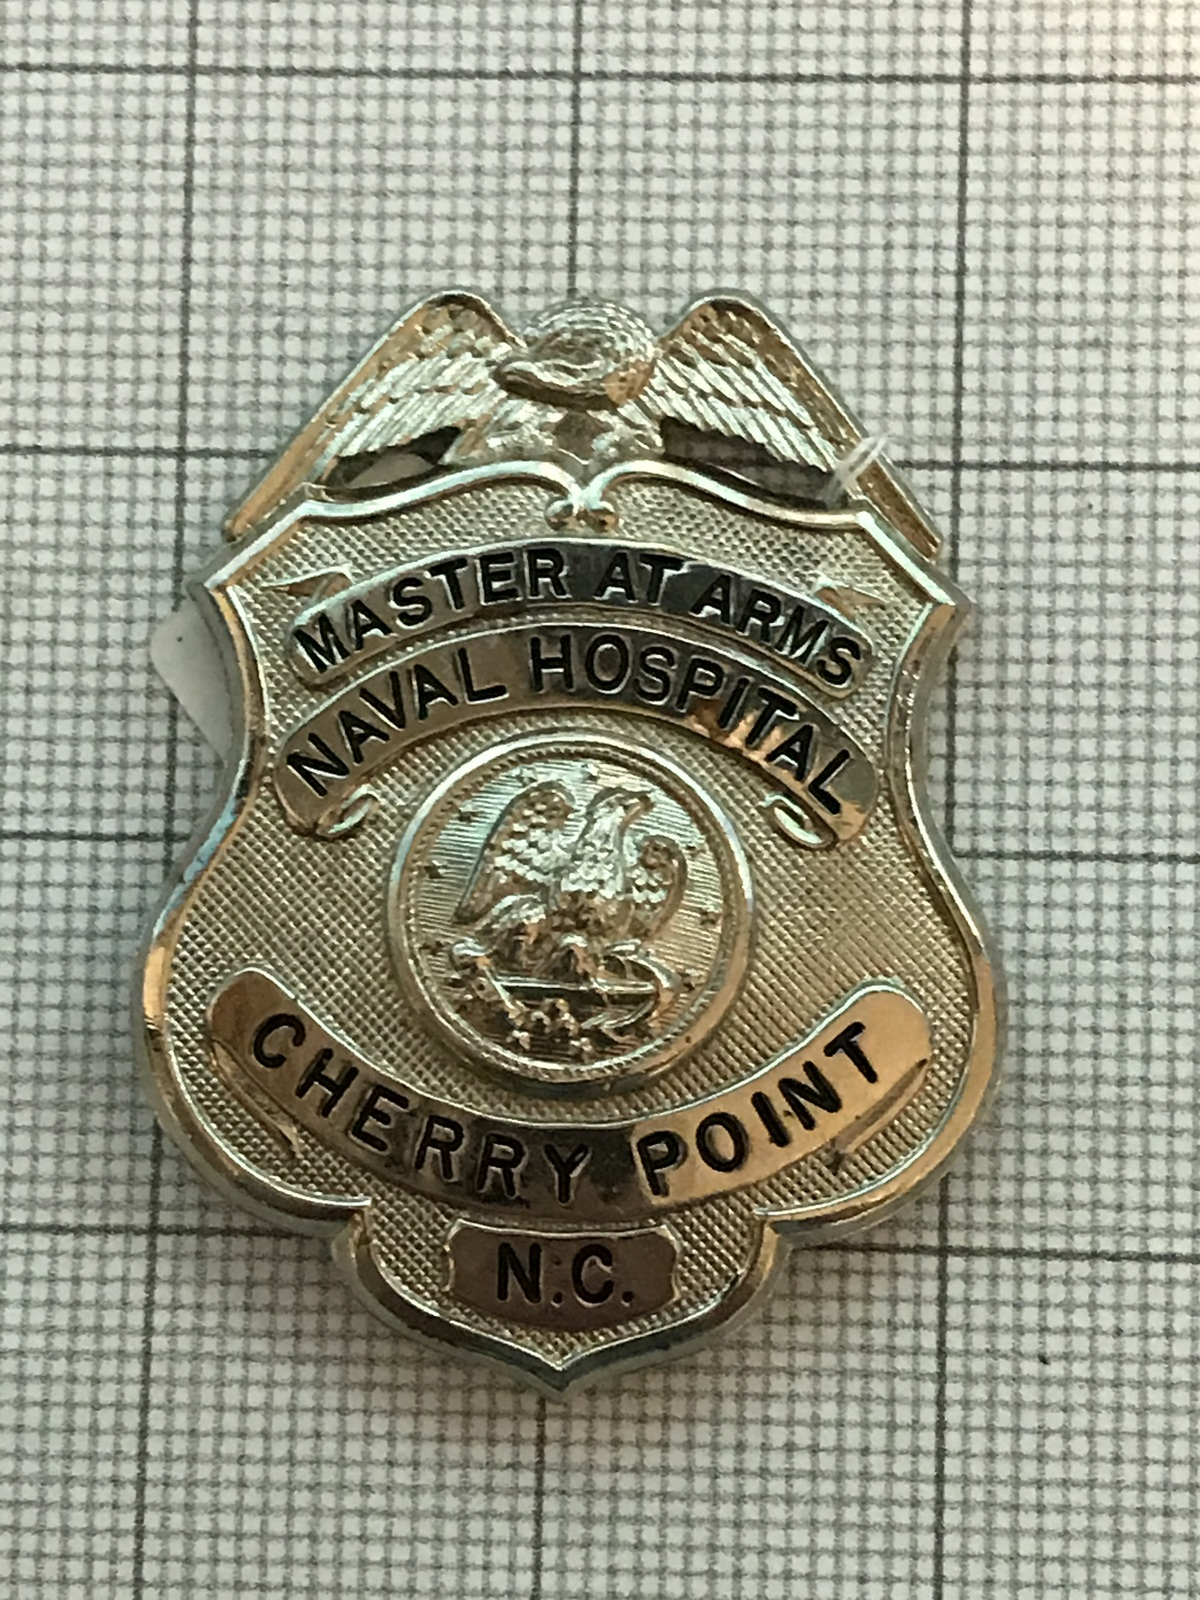 Primary image for Master At Arms Naval Hospital Cherry Point North Carolina Obsolete Badge